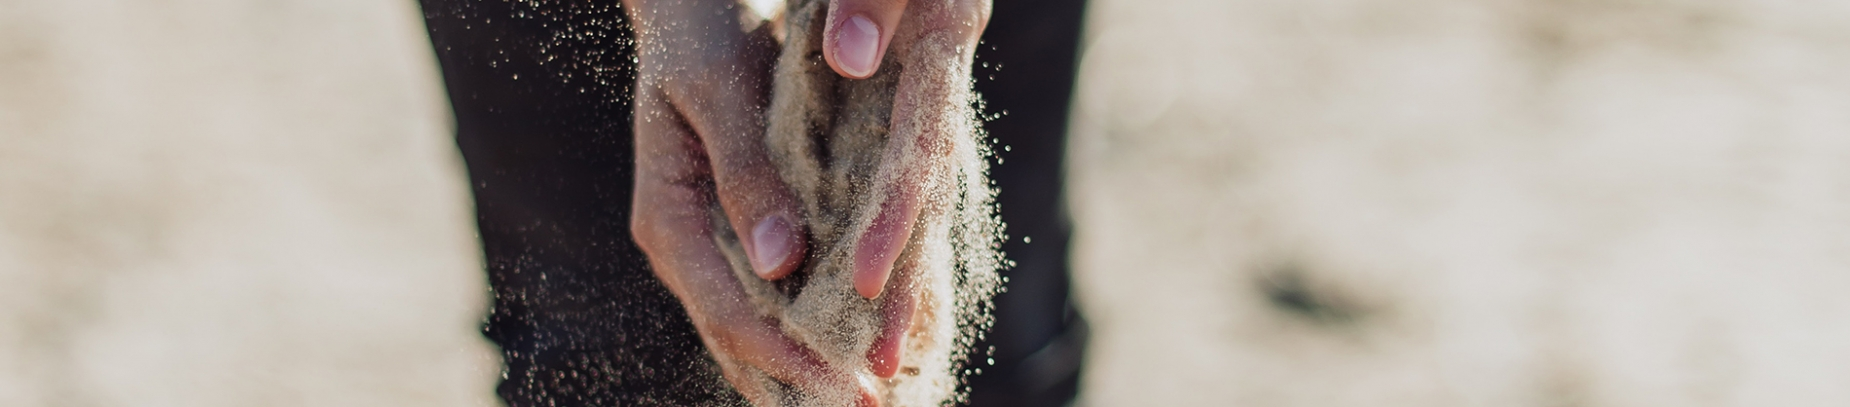 A person tipping sand through their hands on a beach